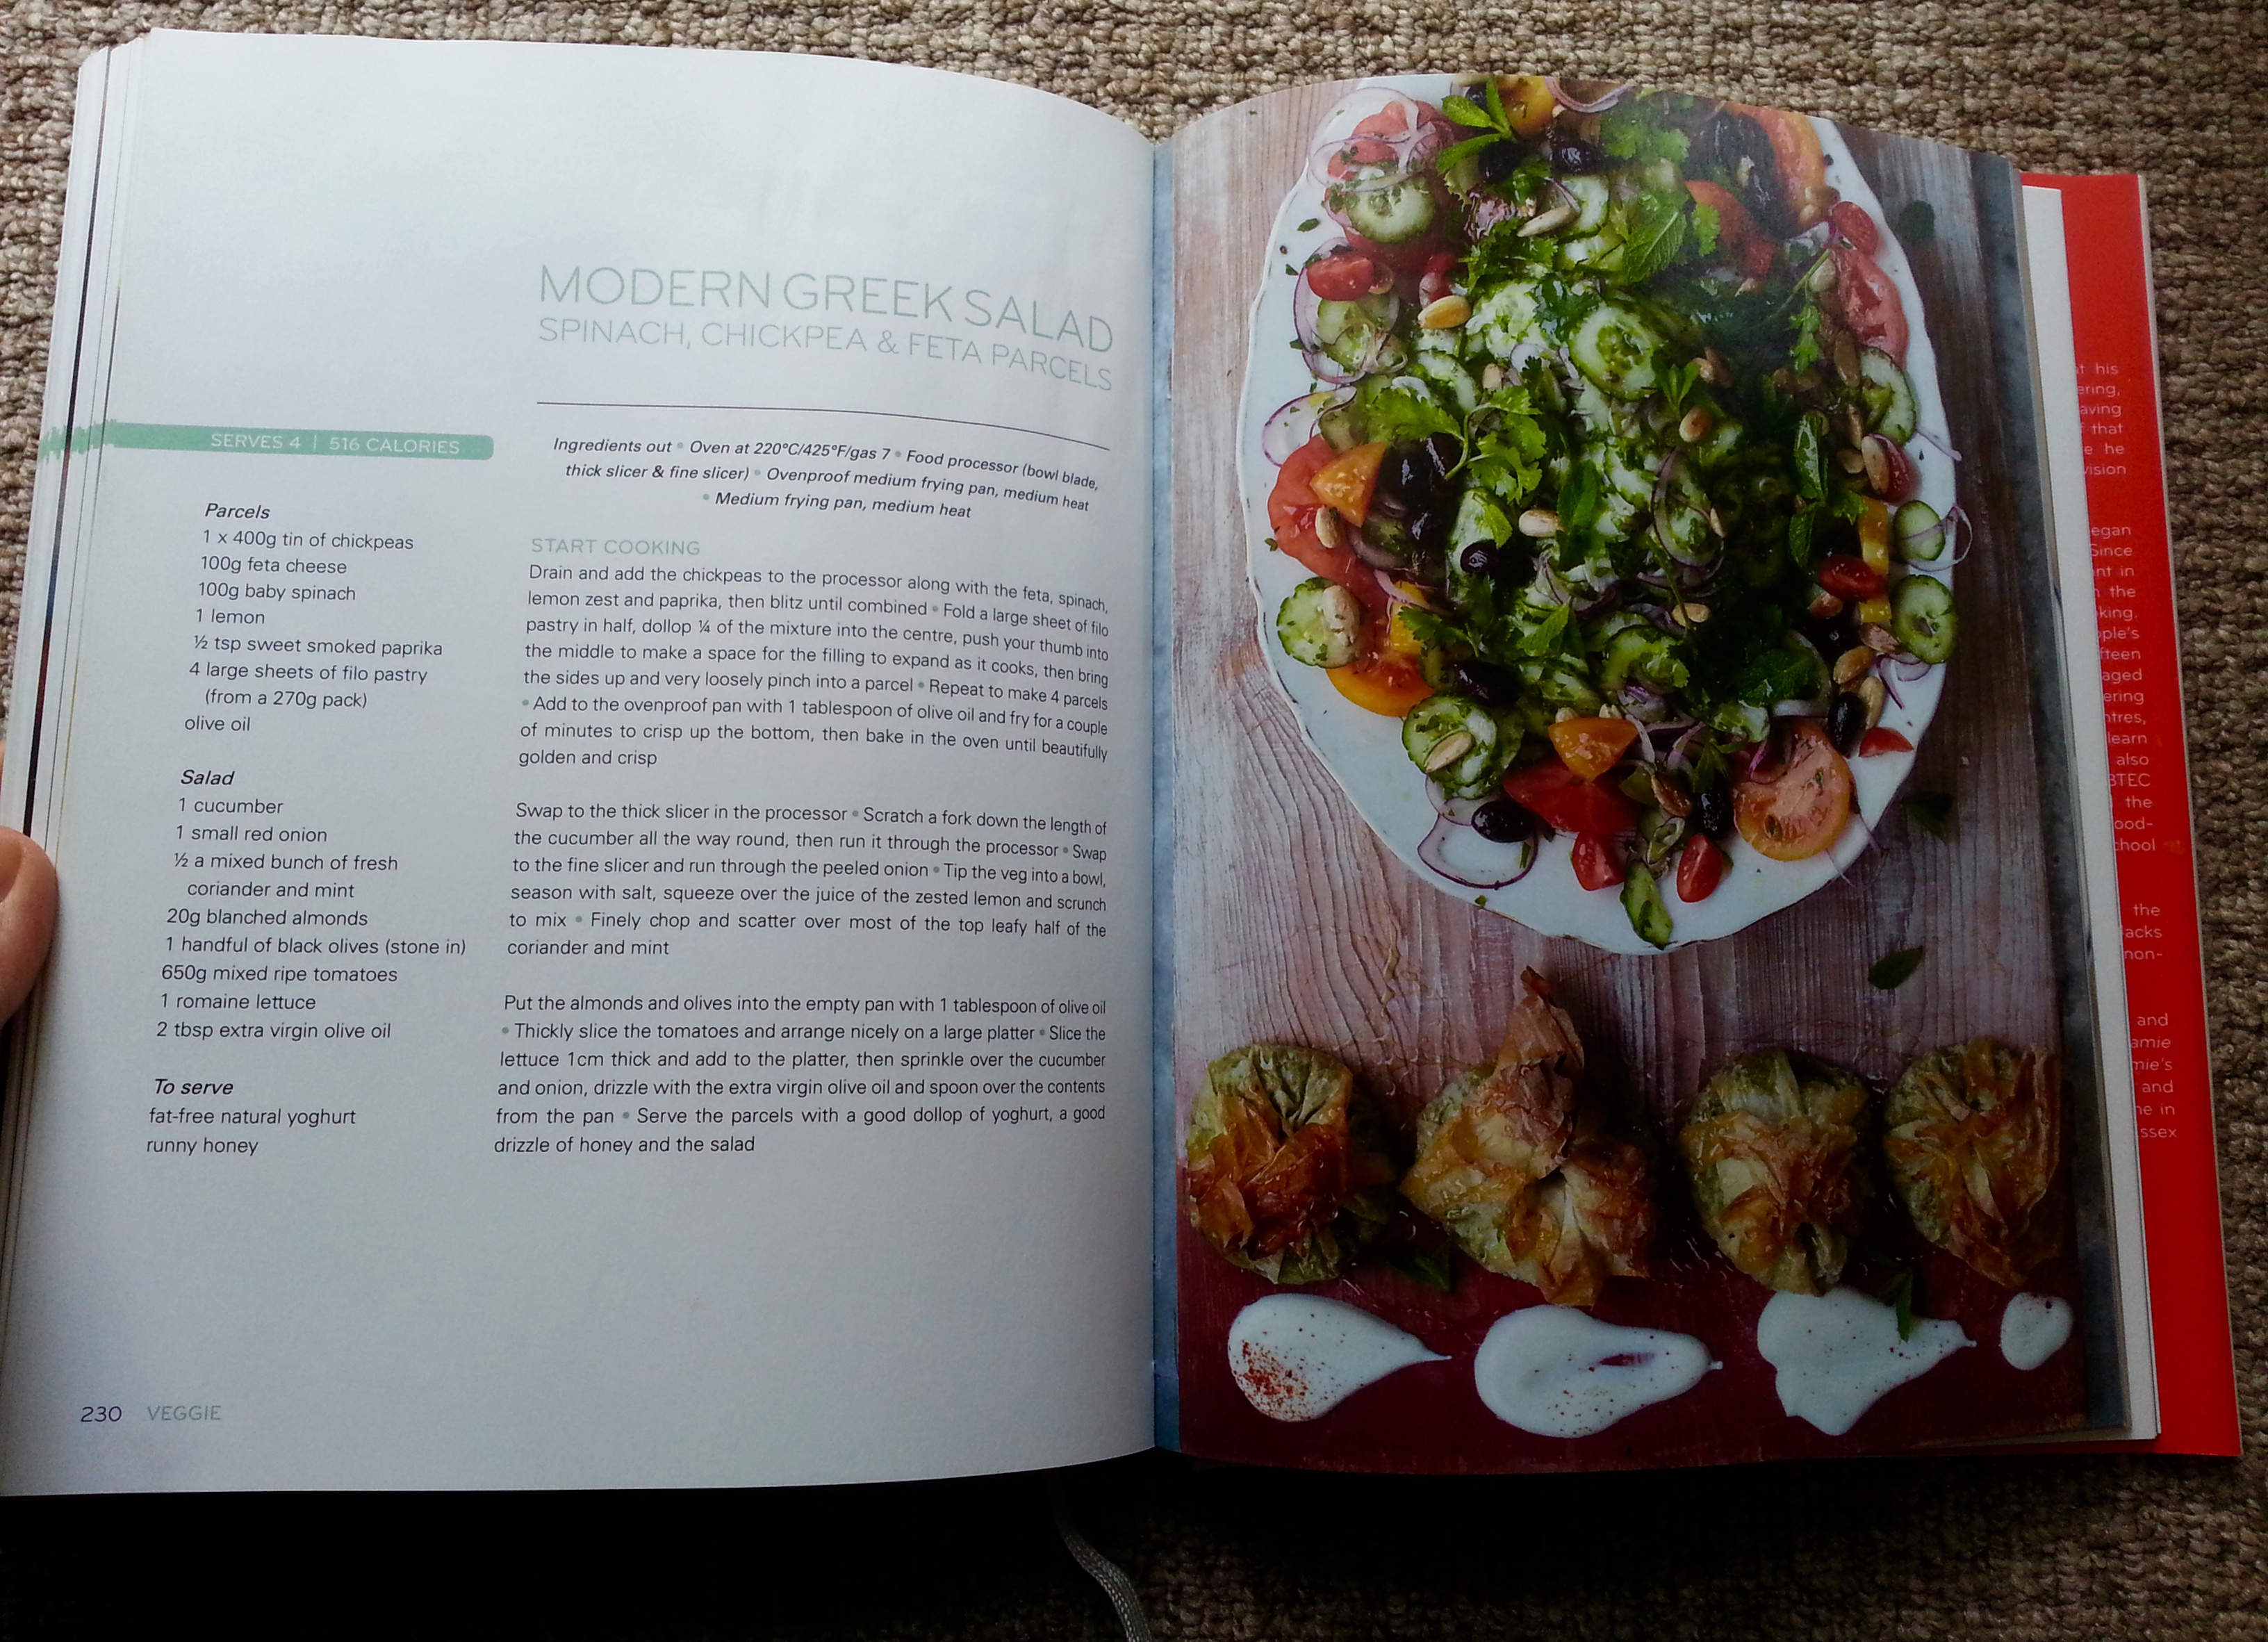 Jamies 15 minute meals book review everywhere jamies 15 minute meals jamie oliver recipe book greek salad forumfinder Images